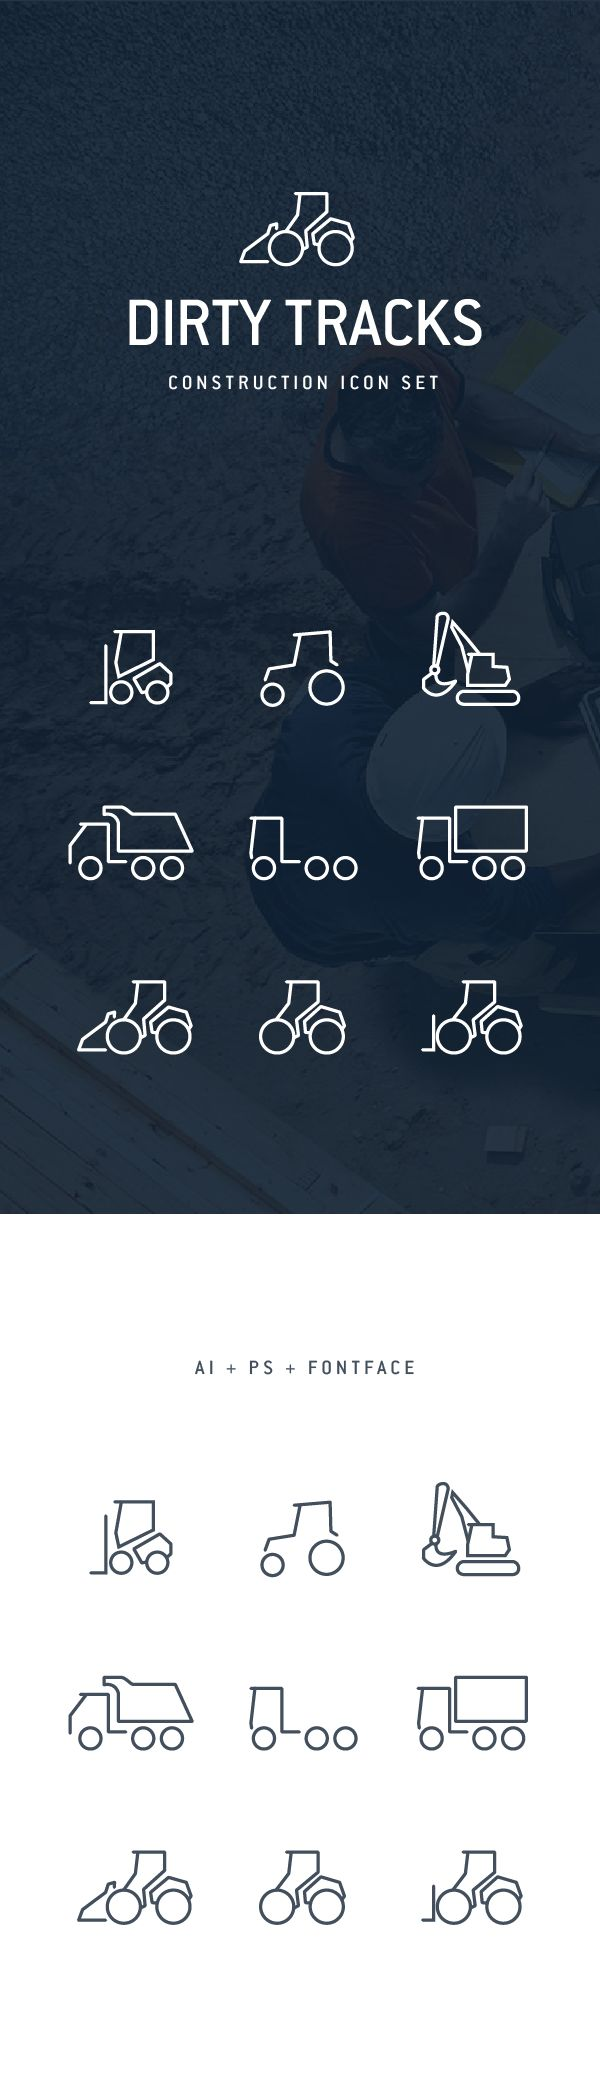 Dirty Tracks Free Flat Icon Set on Behance